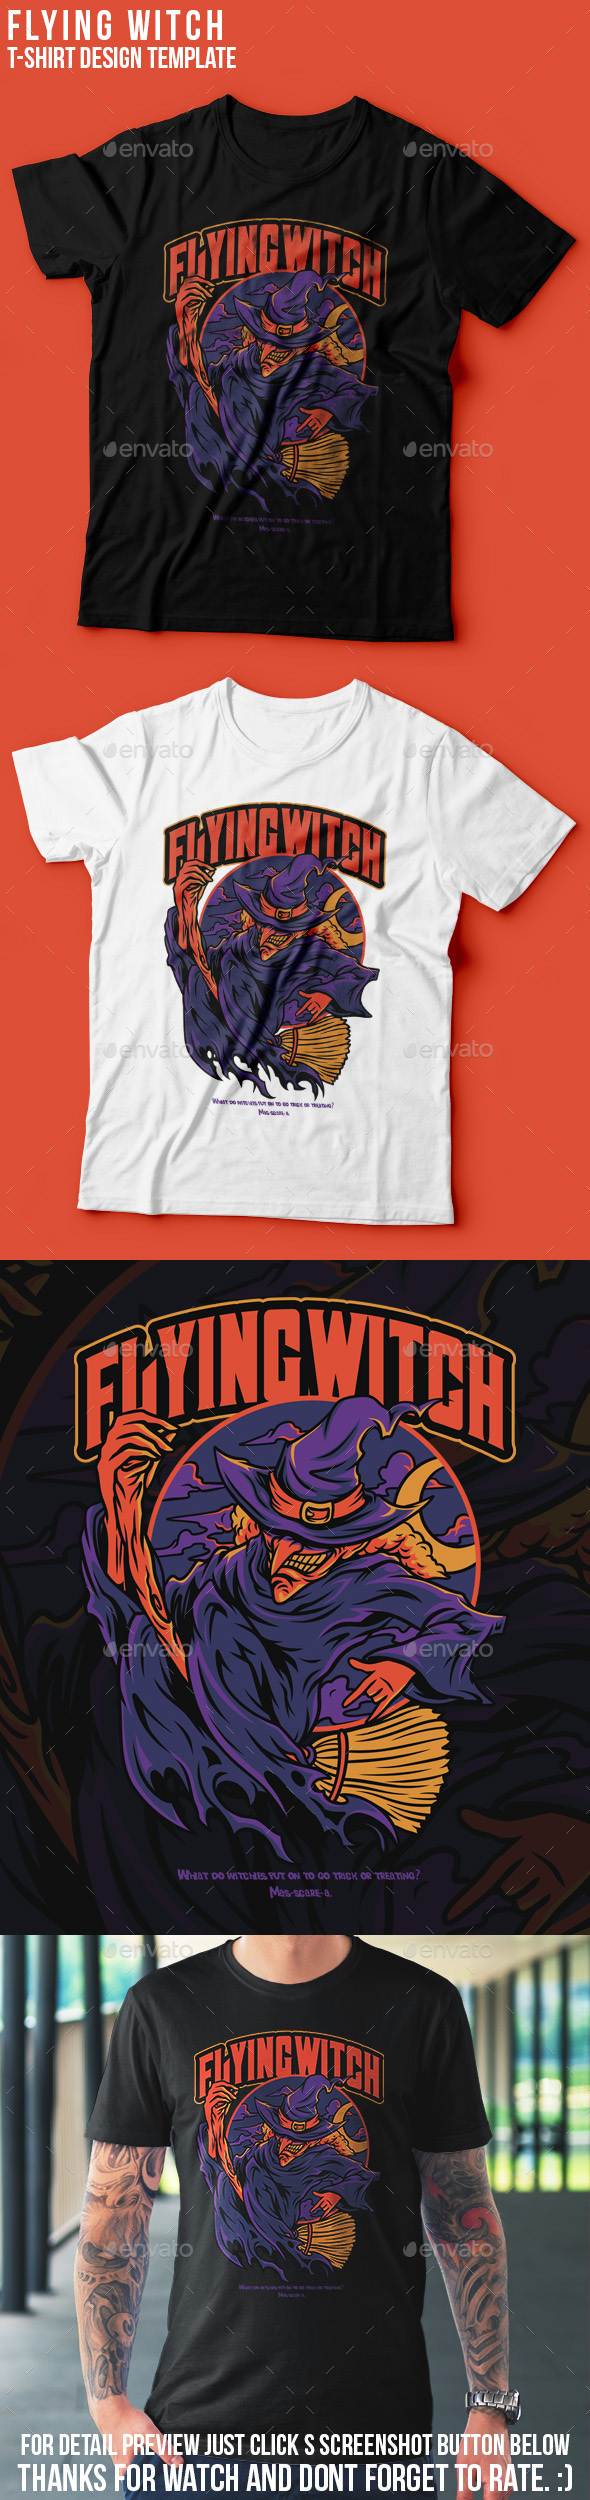 Flying Witch T-Shirt Design